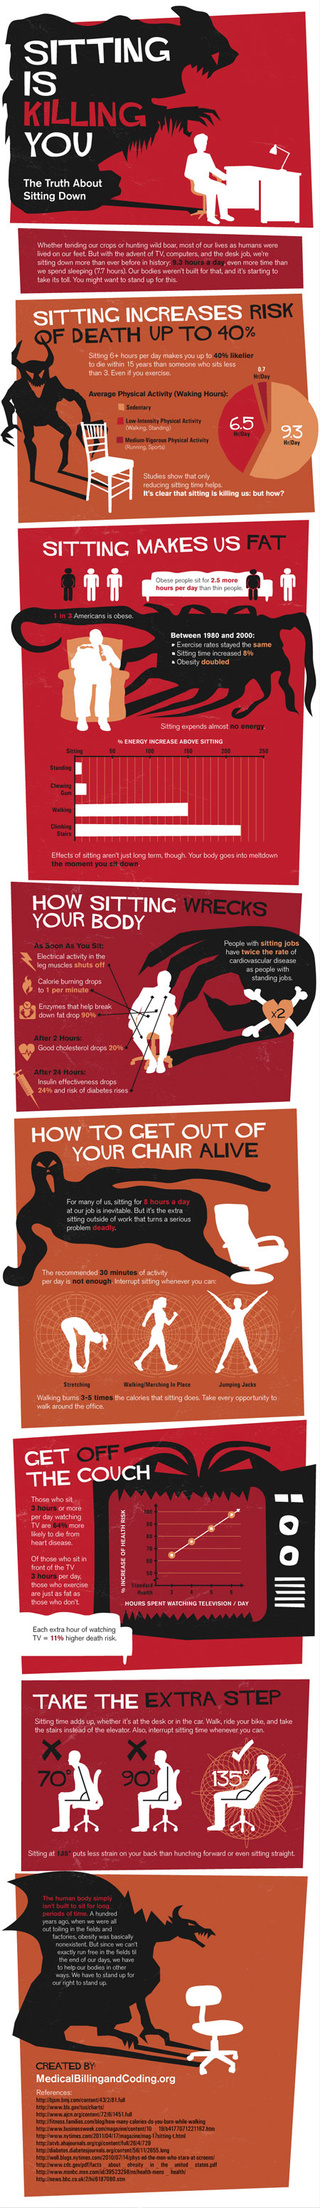 "The ""Sitting Is Killing You"" Infographic Shows Just How Bad Prolonged Sitting Is"